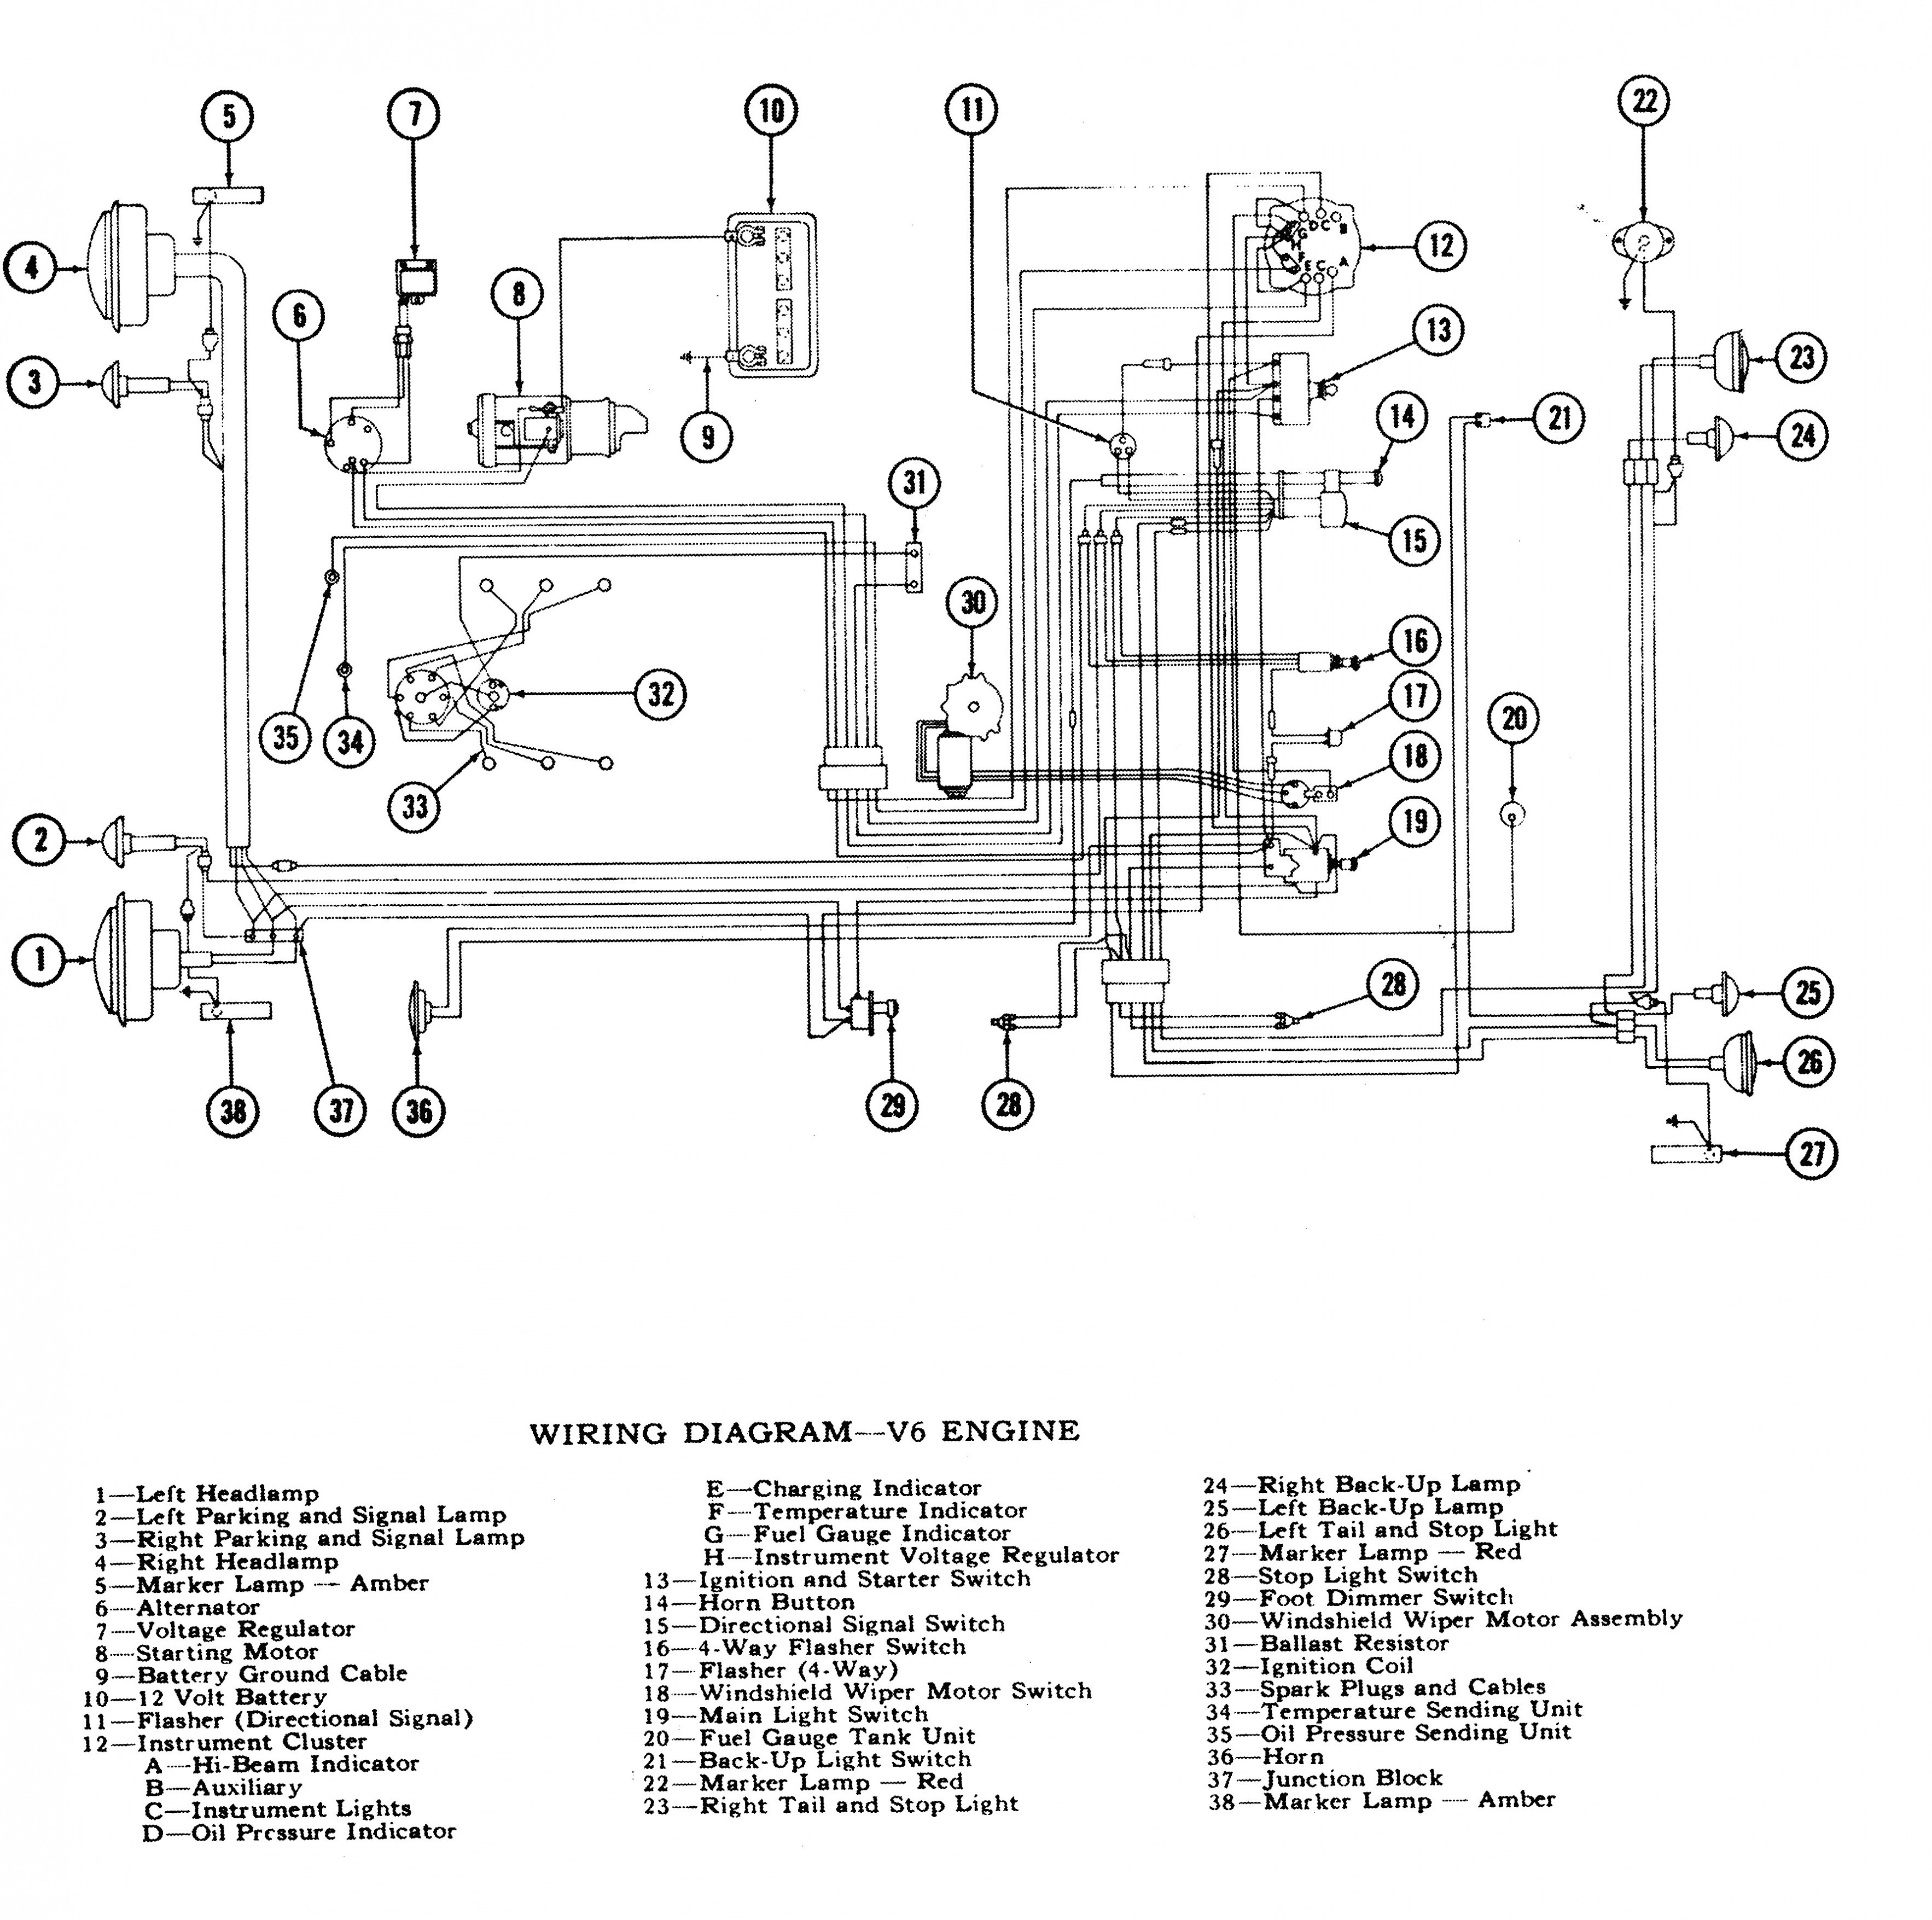 3400 Sfi Engine Diagram Gm 3 1 Engine Diagram Layout Wiring Diagrams •